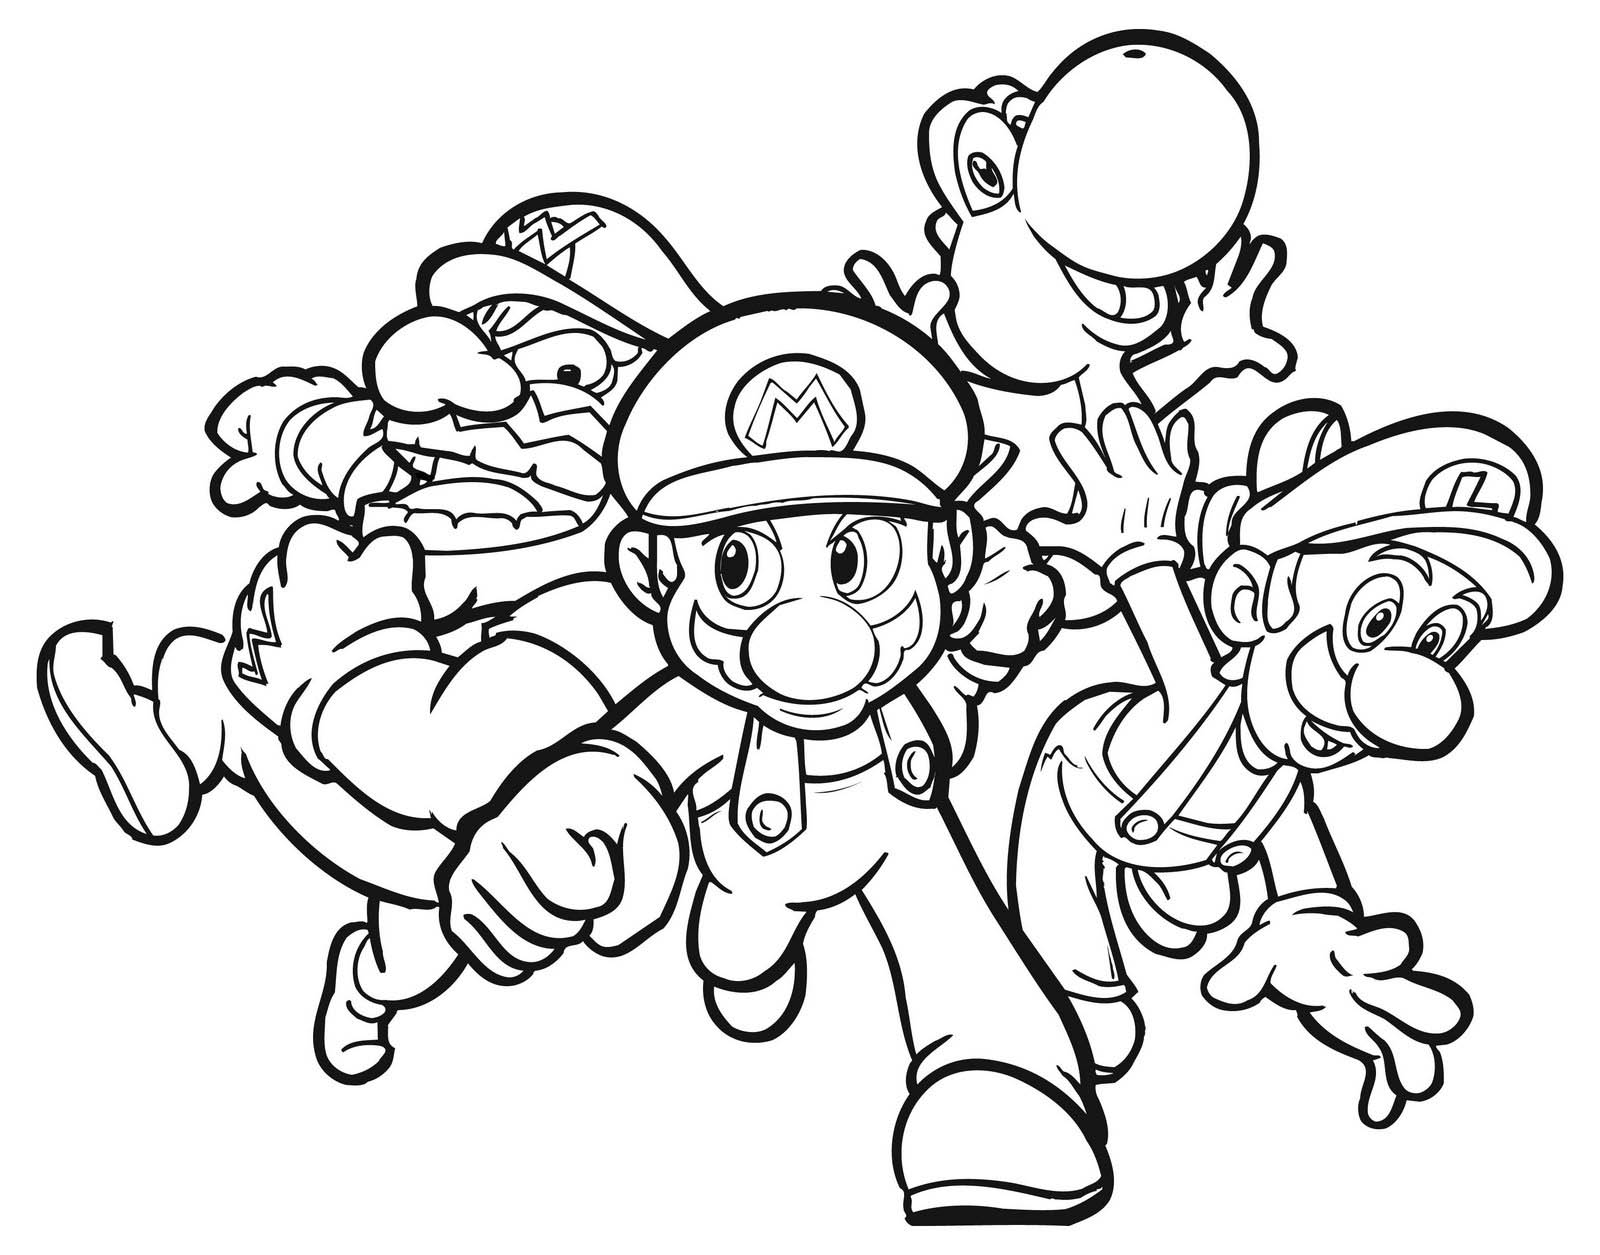 Nifty image with regard to printable mario coloring pages